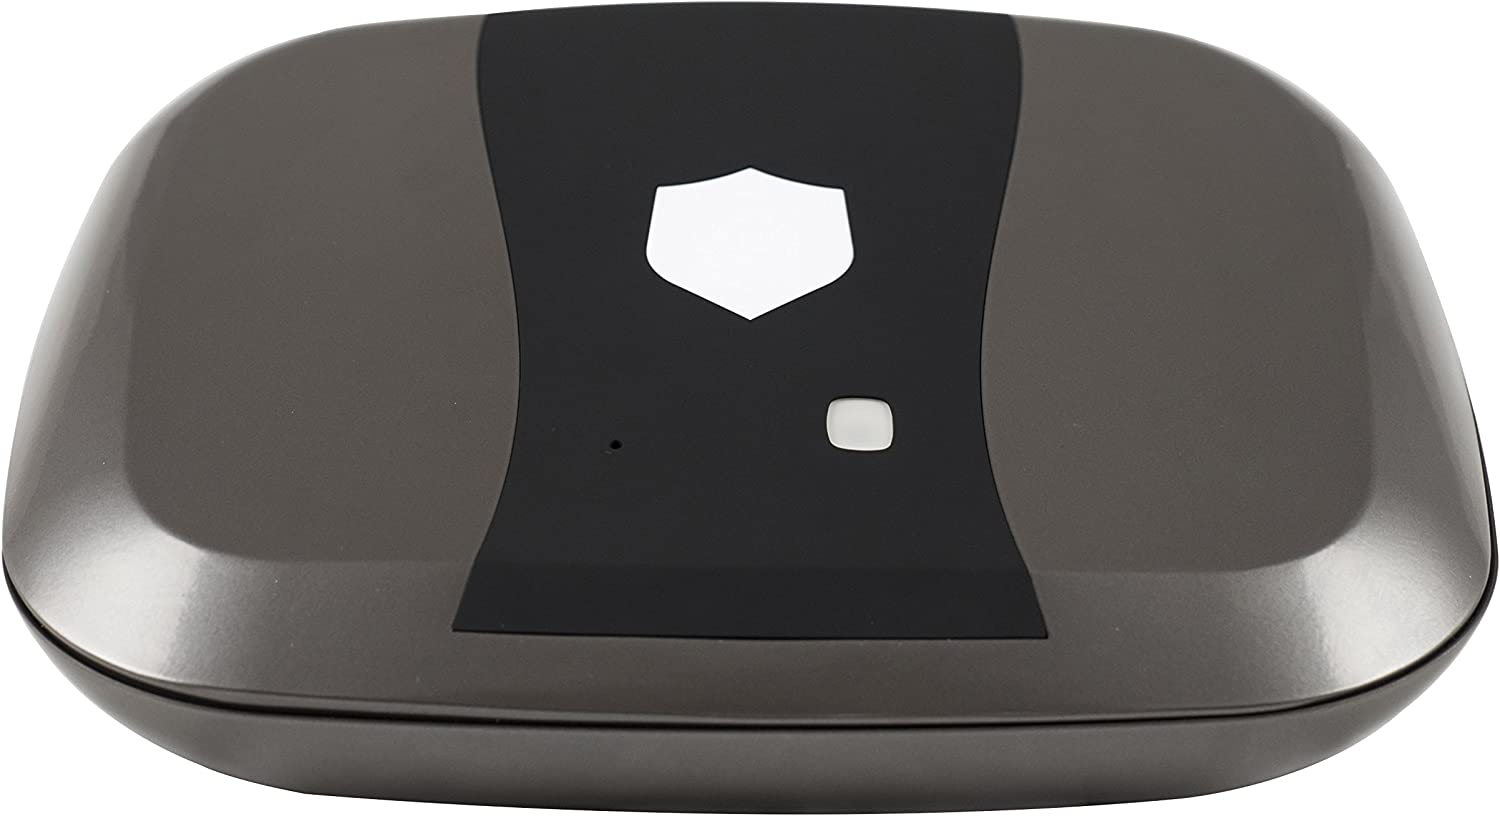 The GunBox 2.0 Smartest Quick Access Safe Fixed price for sale and RFiD Bio Gun - specialty shop